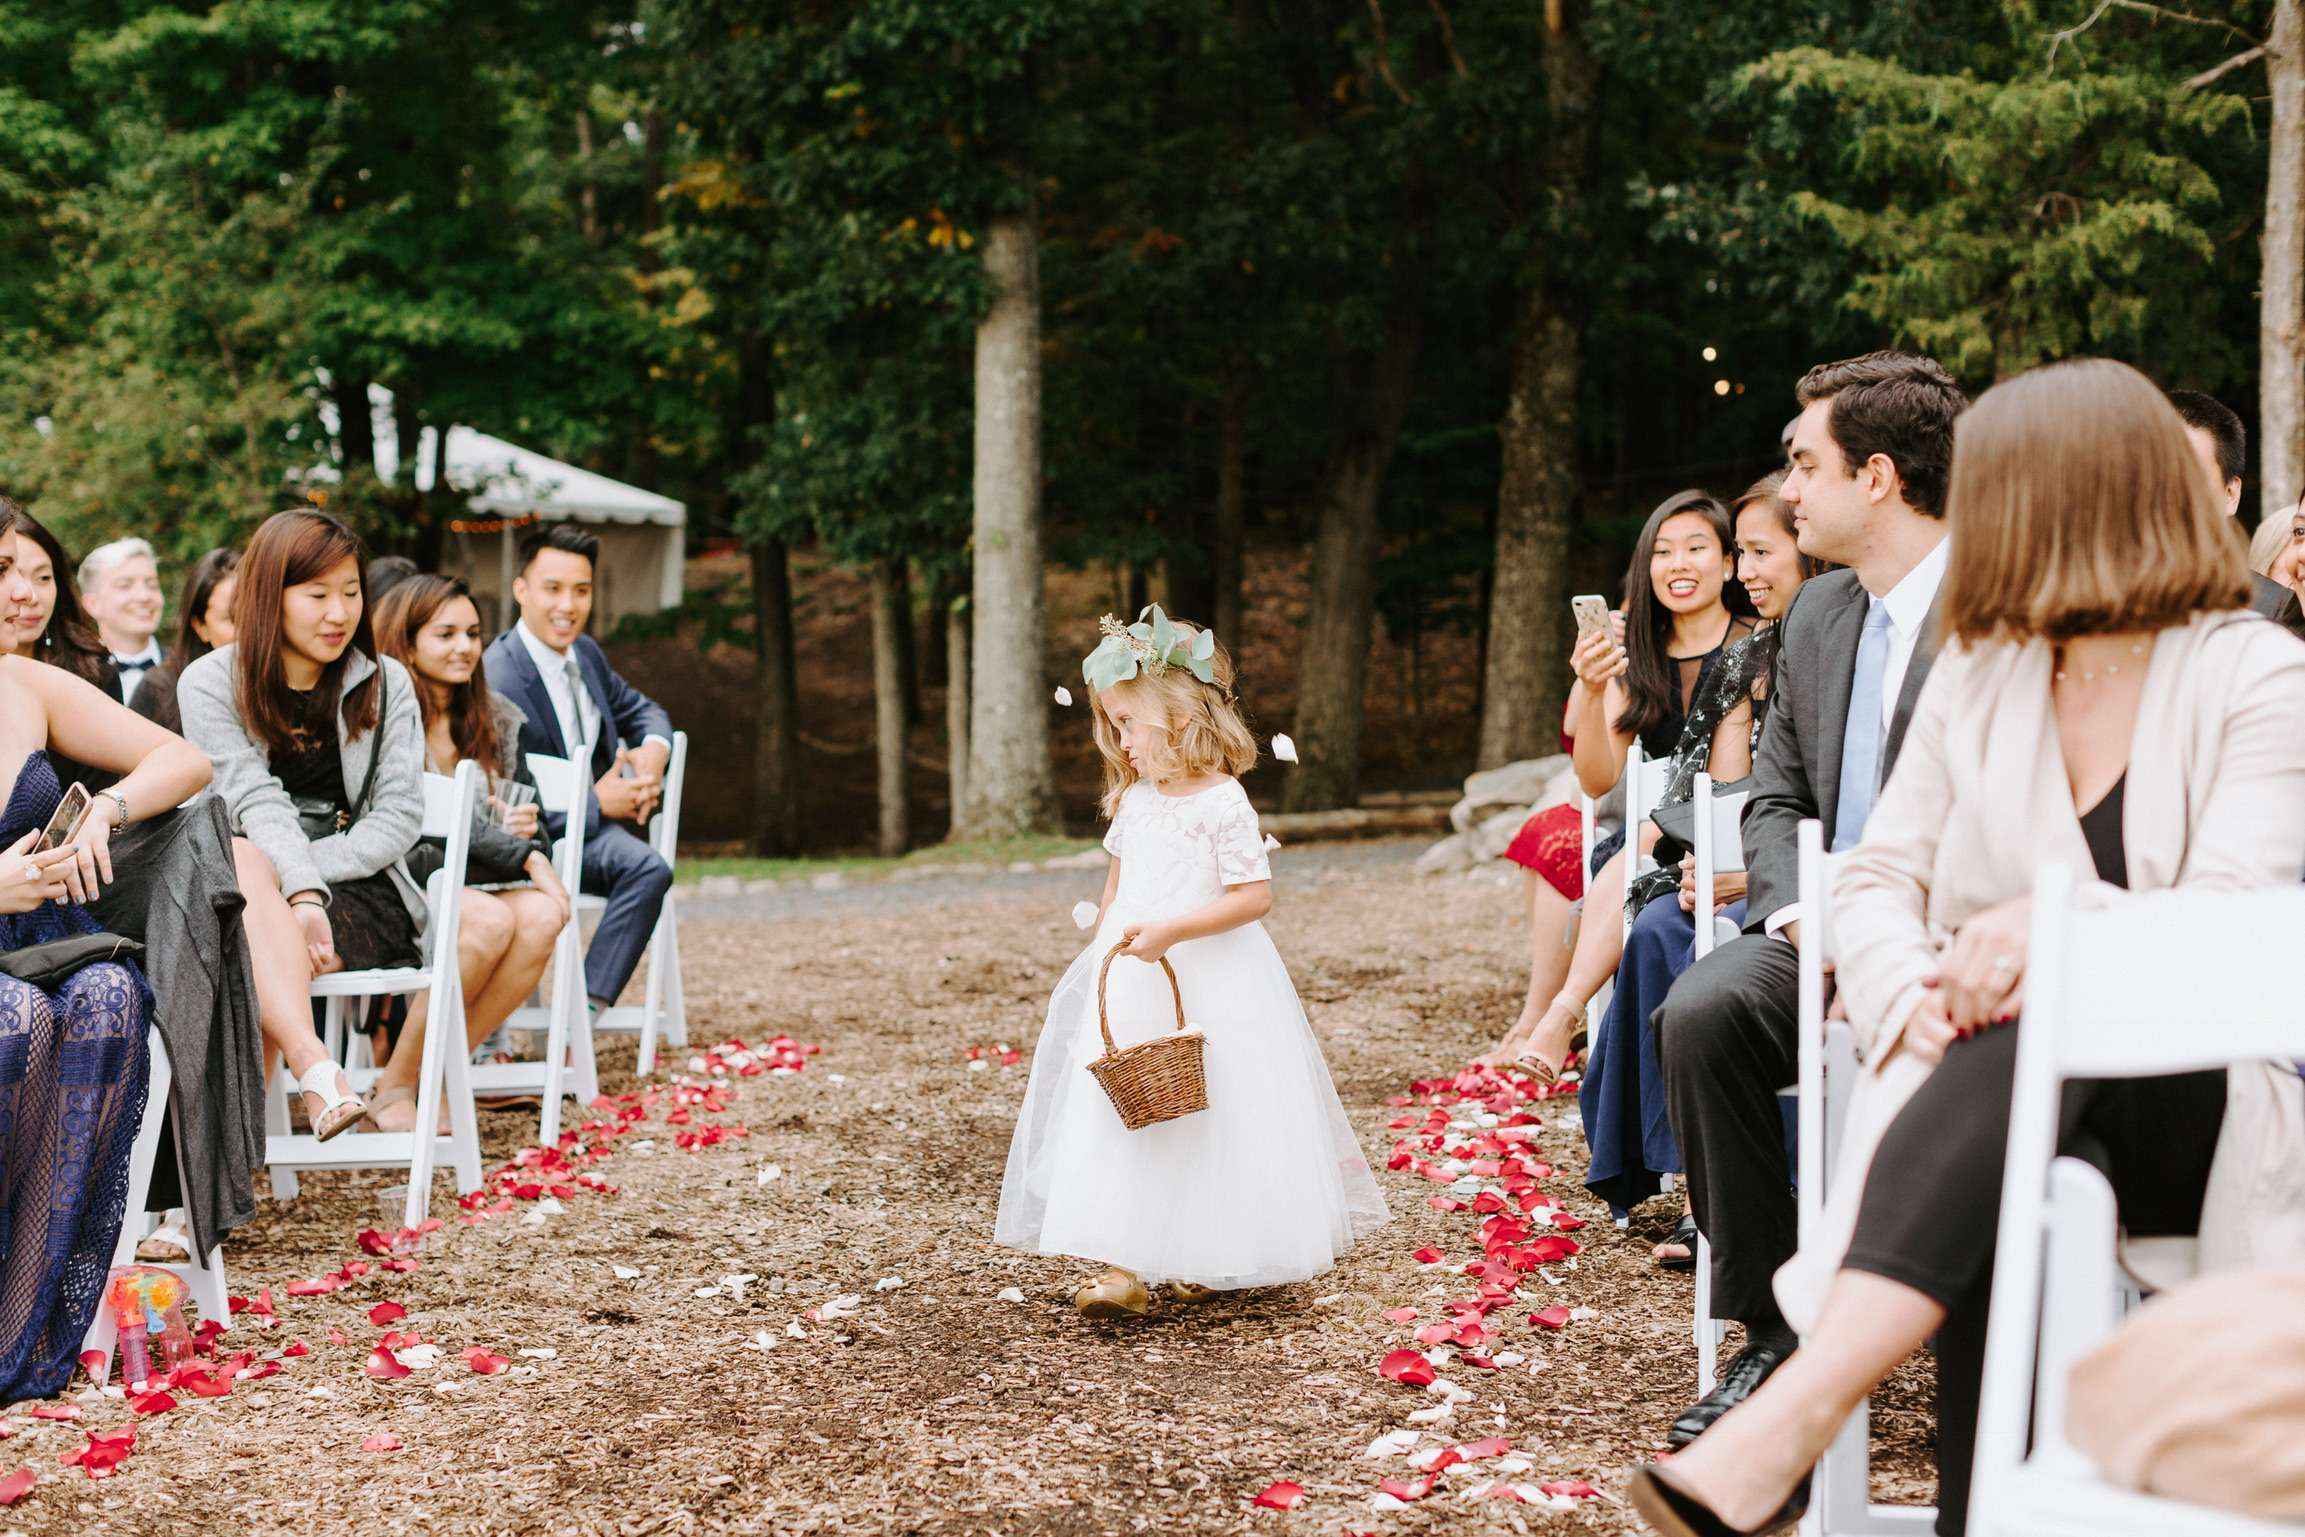 When Lucie got to the top of the aisle we watched as her face shifted from excitement to embarrassment. She got nervous from all the attention and although she didn't cry, she didn't smile either. This is a great shot from the photographer of Lucie begrudgingly throwing the petals over her shoulder.